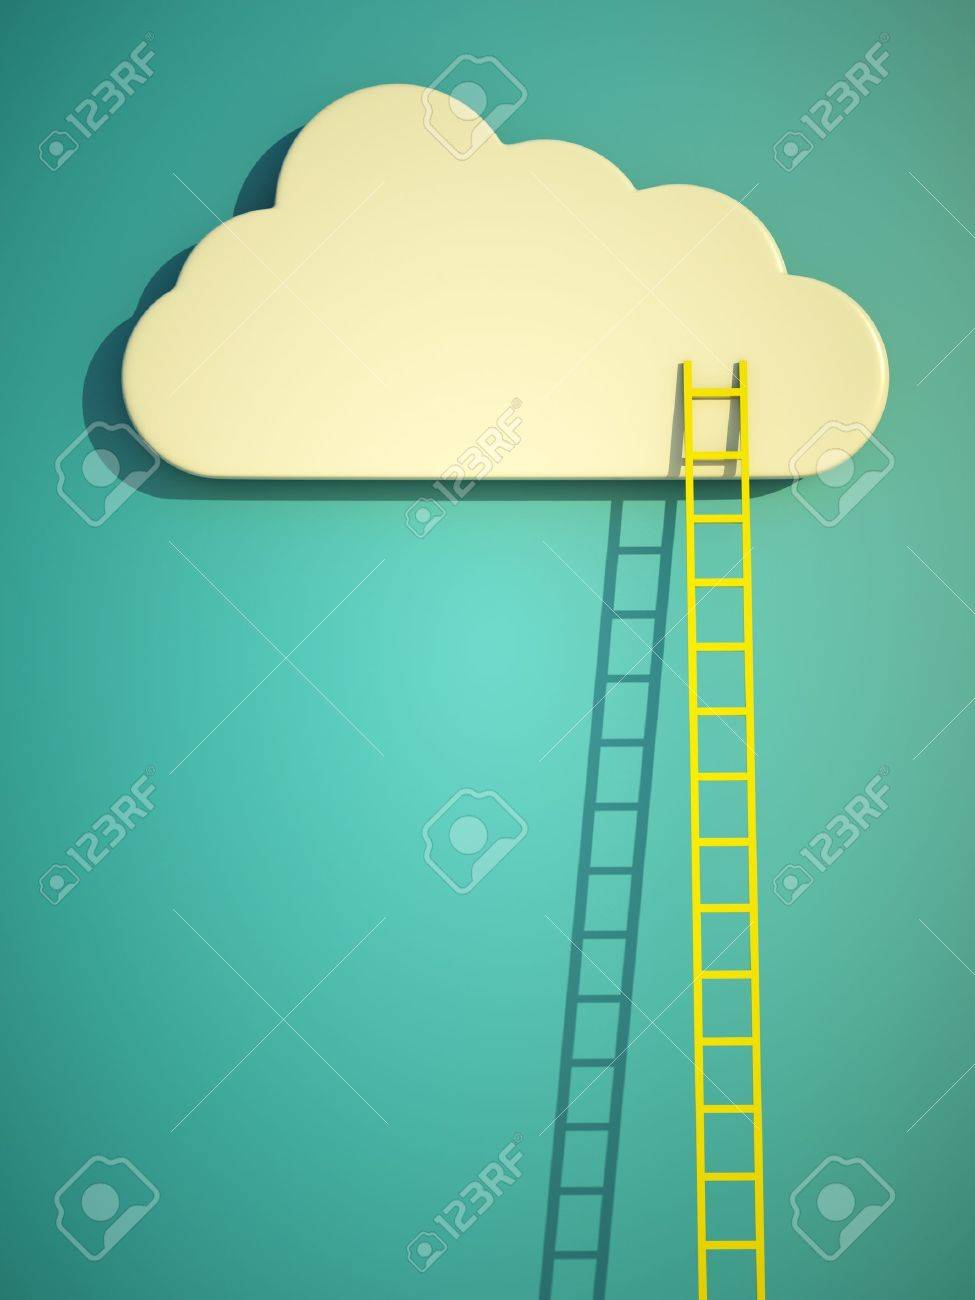 a competition concept, cloud with ladders on blue Stock Photo - 13108809